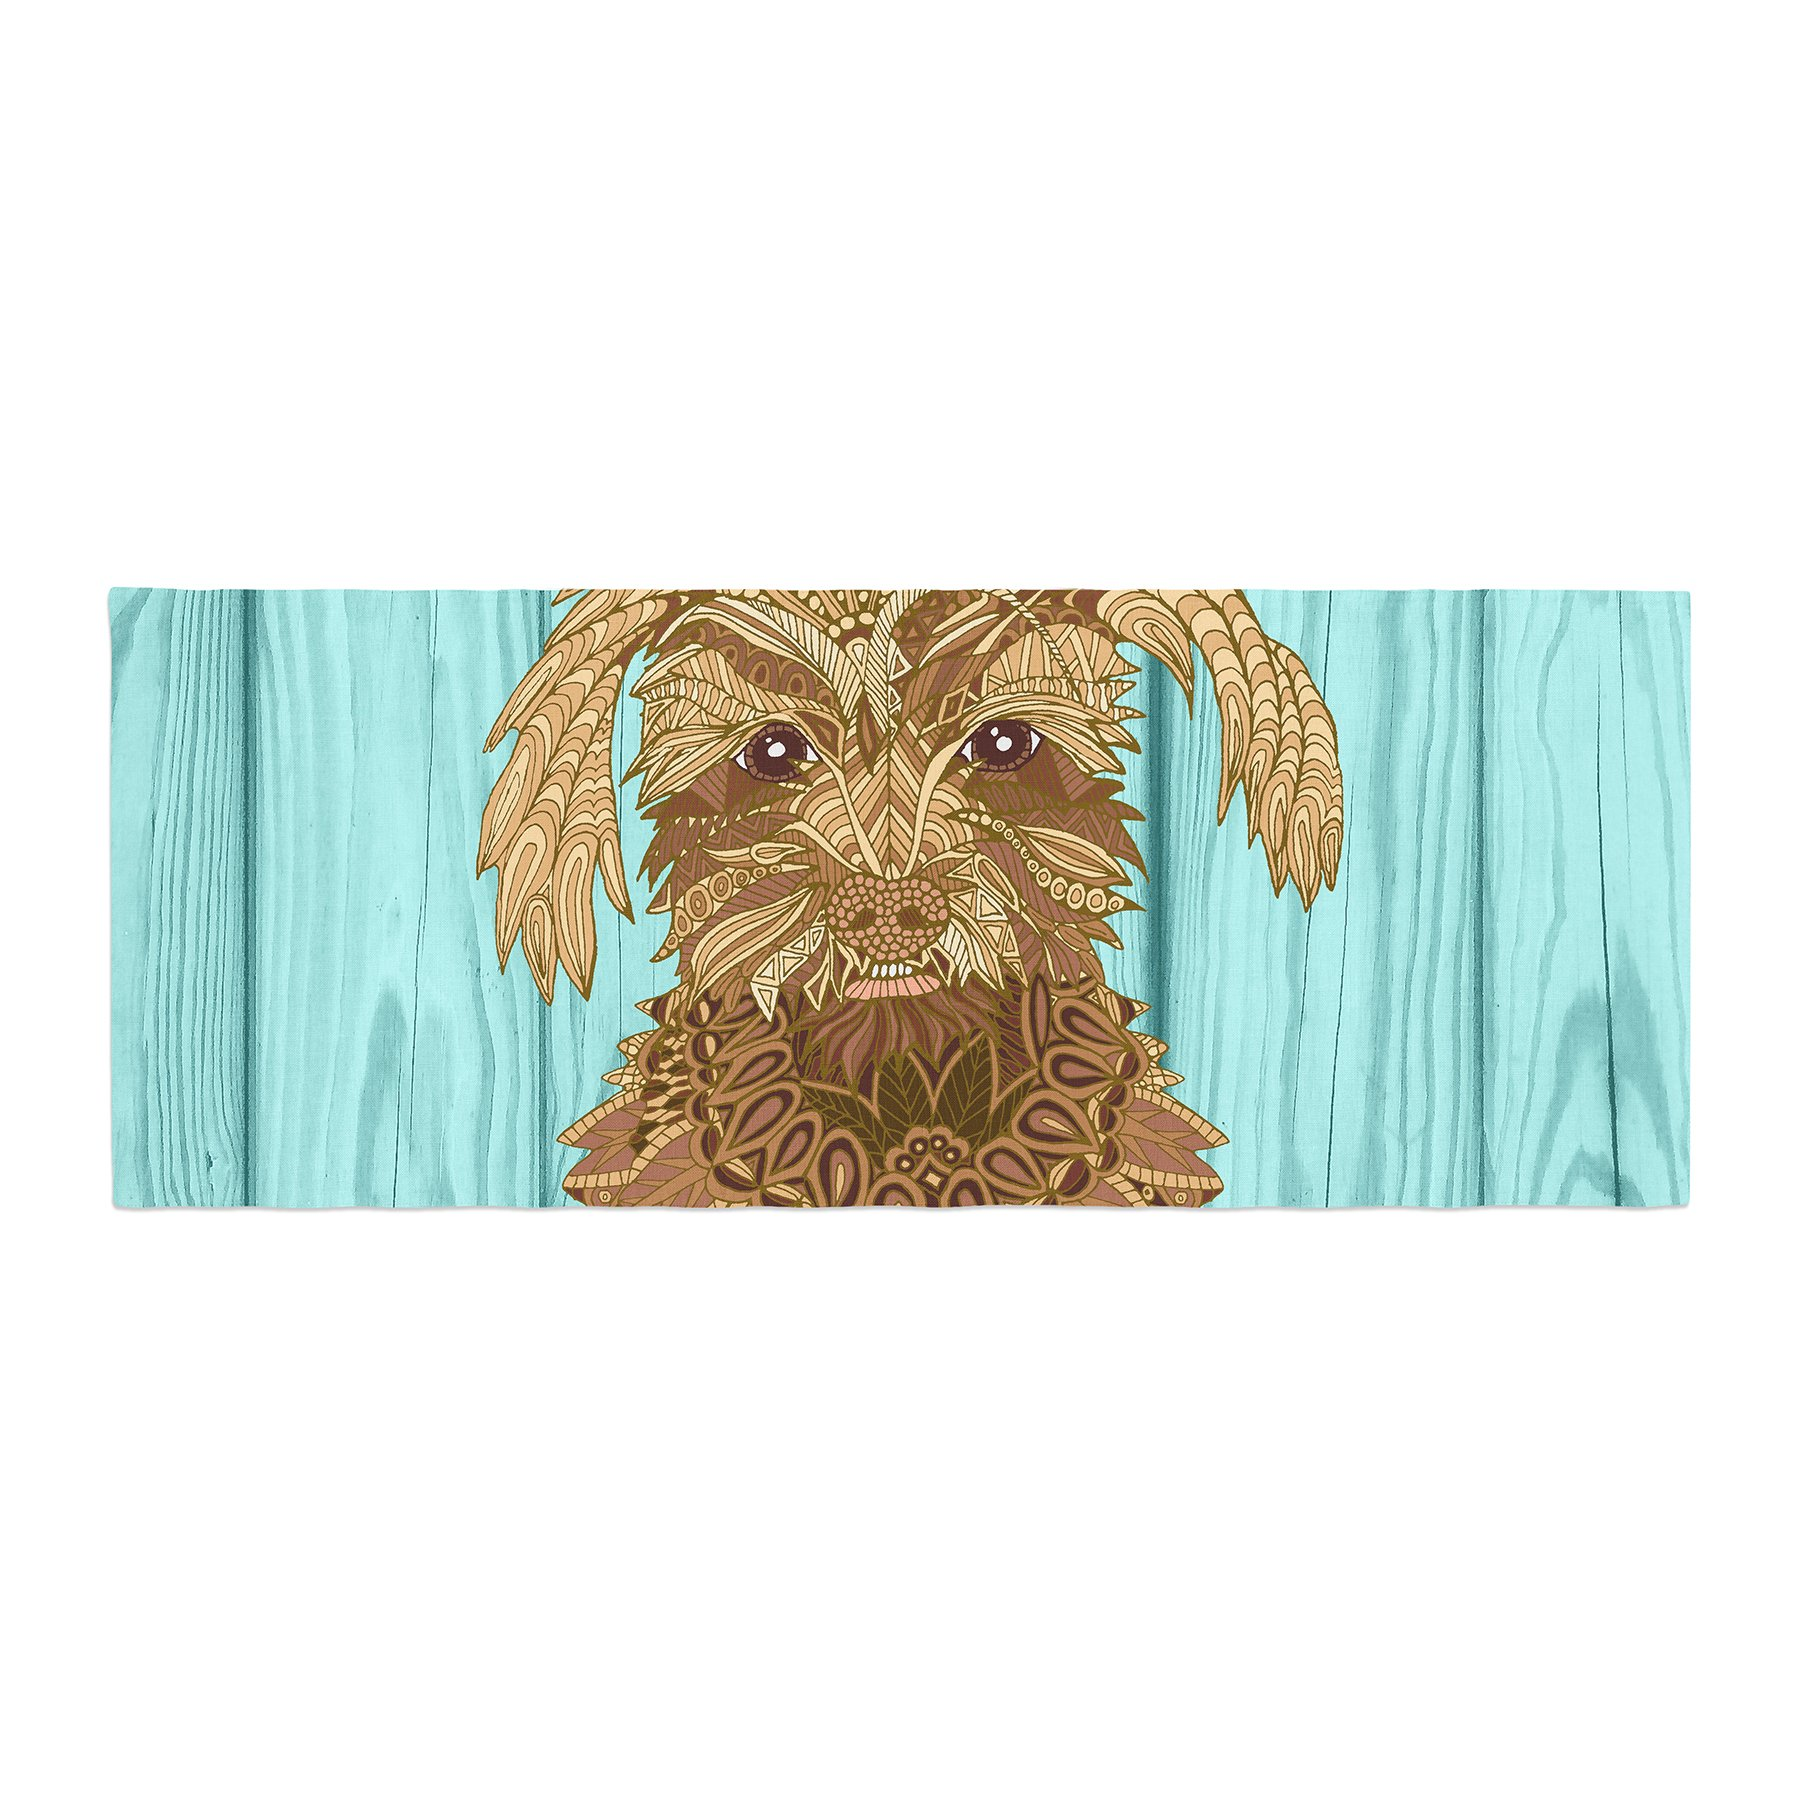 Kess InHouse Art Love Passion Gatsby the Great Brown Dog Bed Runner, 34'' x 86''